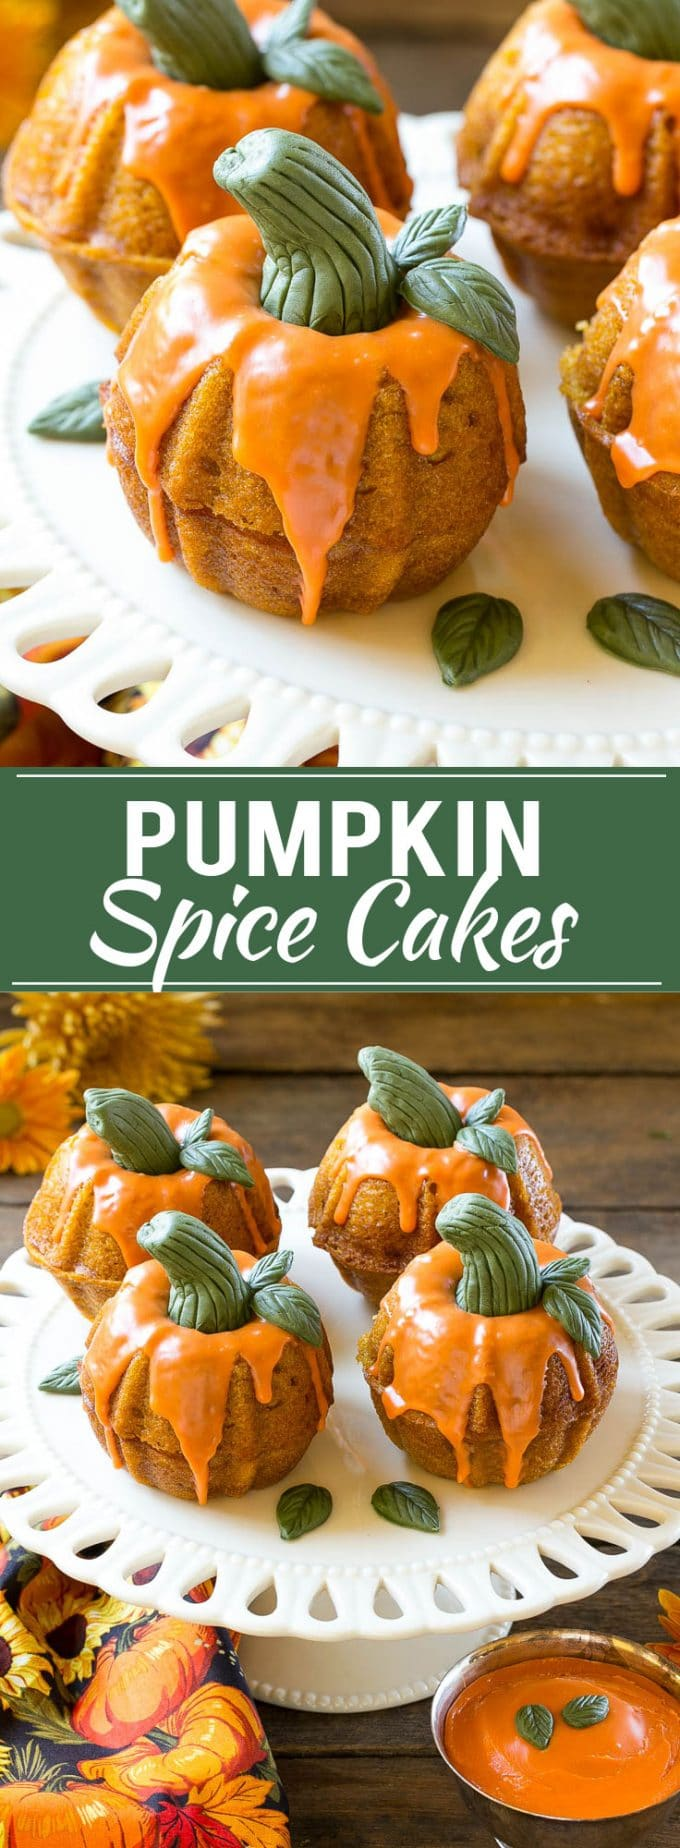 Pumpkin Spice Cake Recipe | Pumpkin Cake | Easy Pumpkin Cake | Thanksgiving Dessert